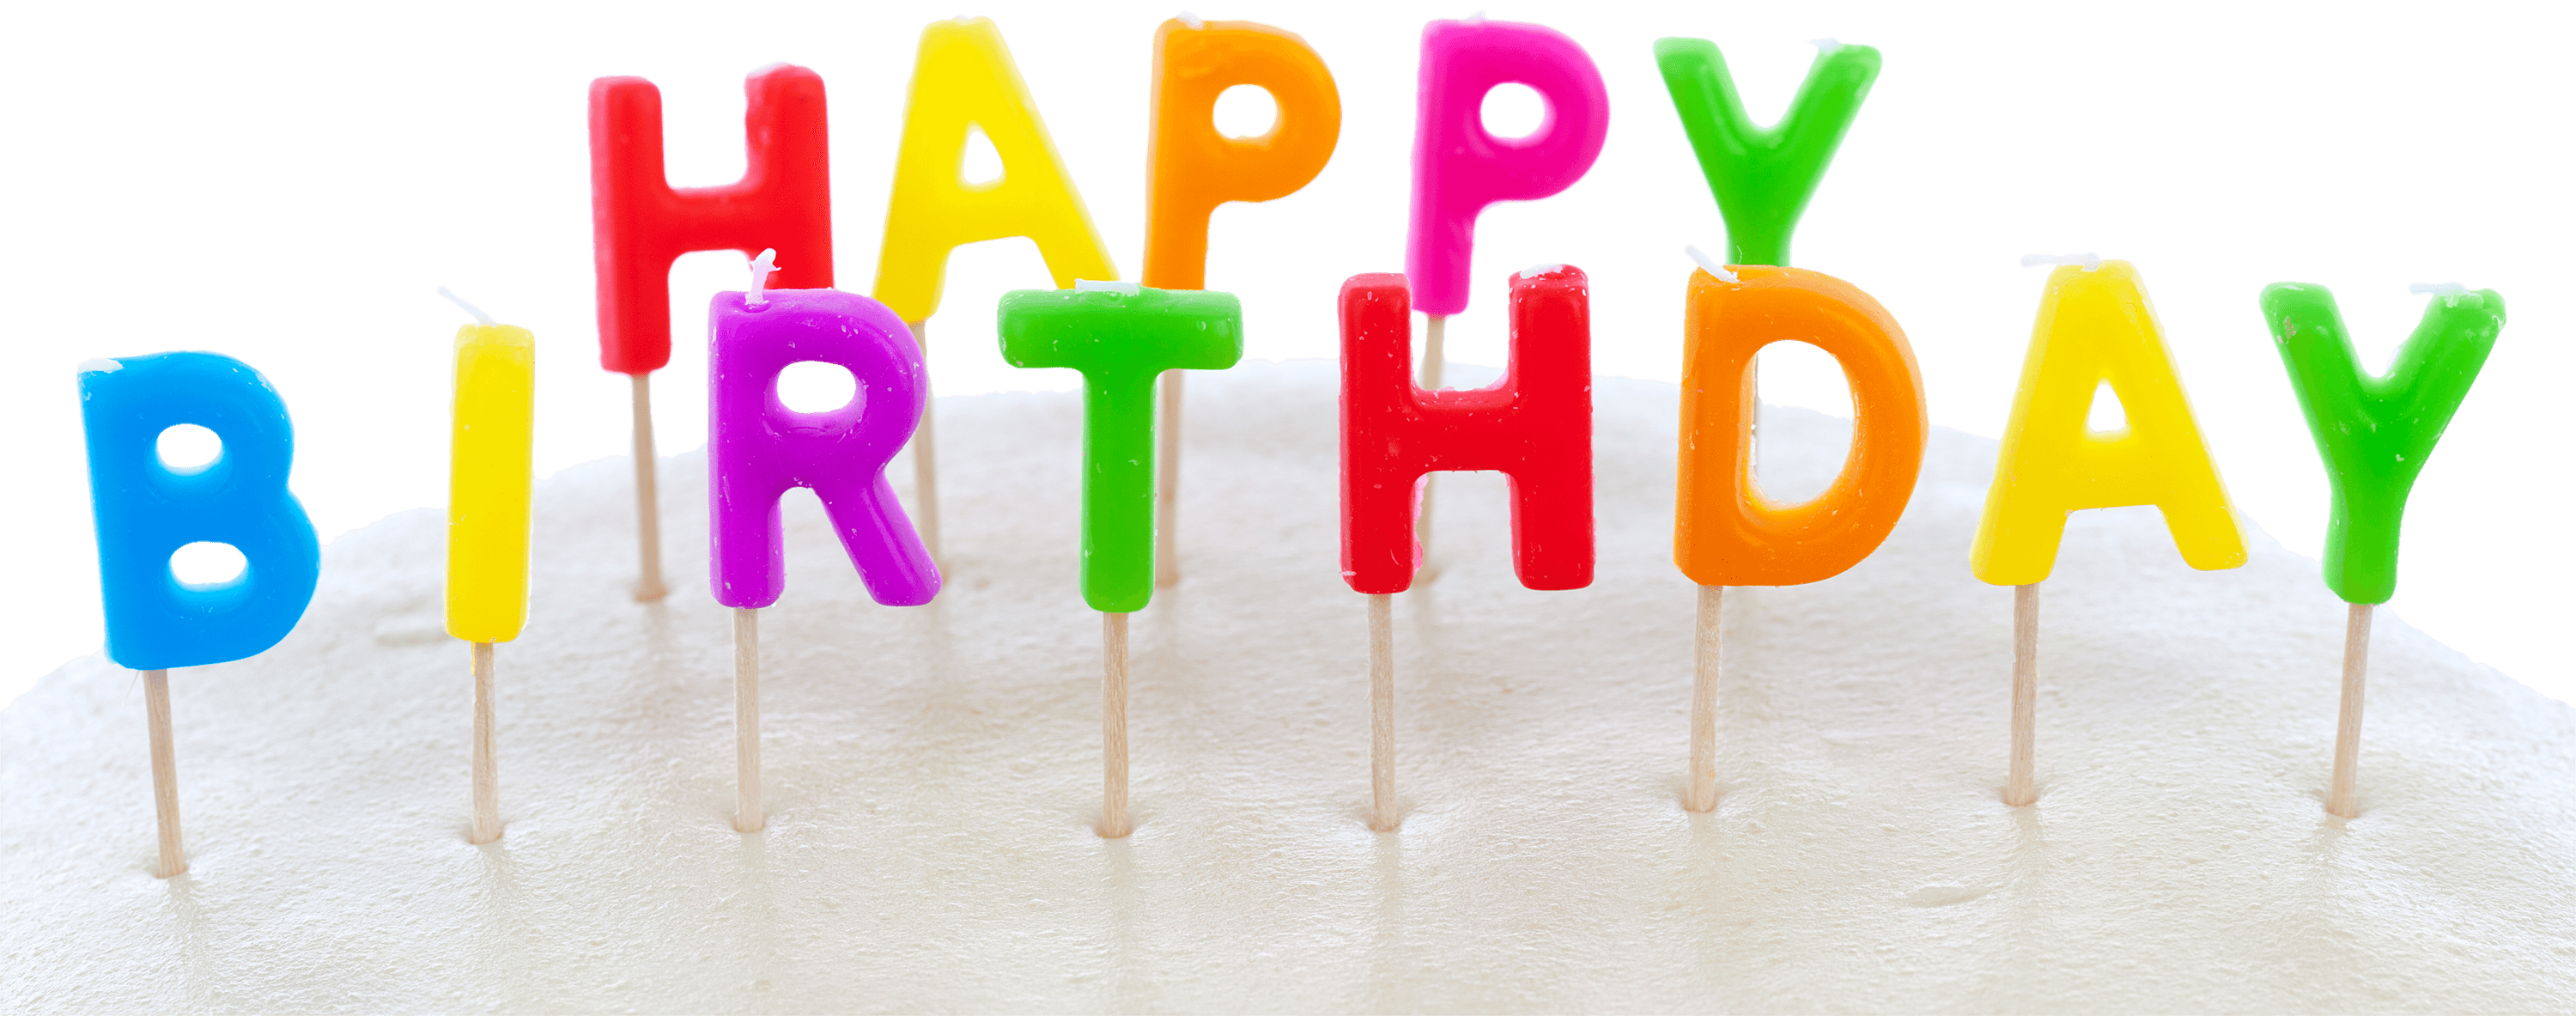 Happy Birthday Cake Surface Transparent Png Stickpng